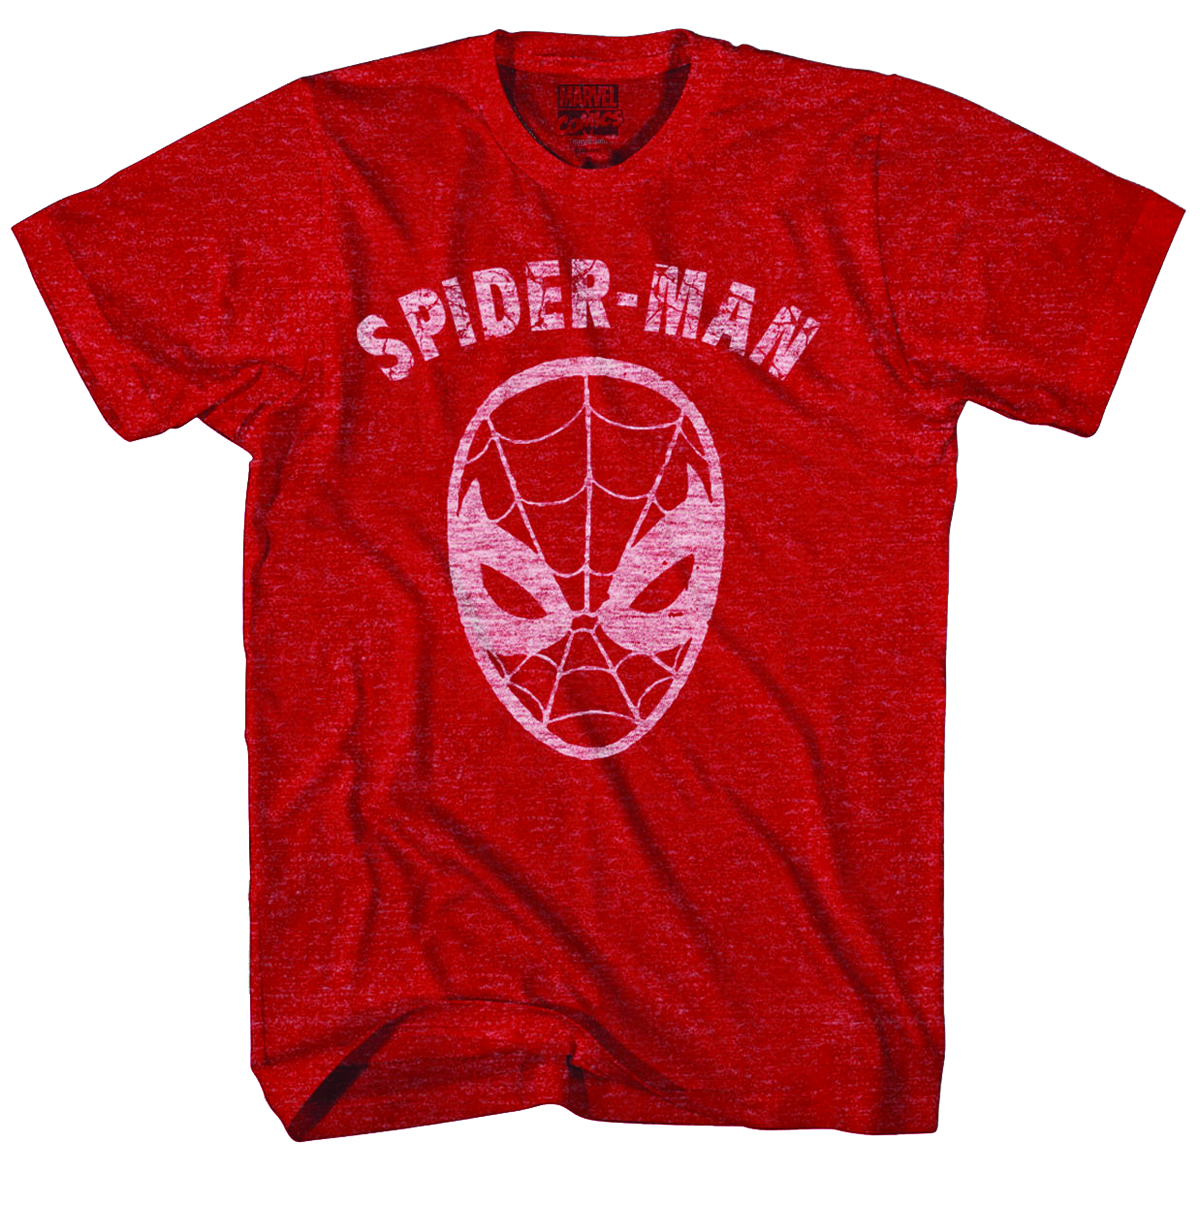 SPIDER-MAN INVERSE ICON PX RED HTHR T/S MED